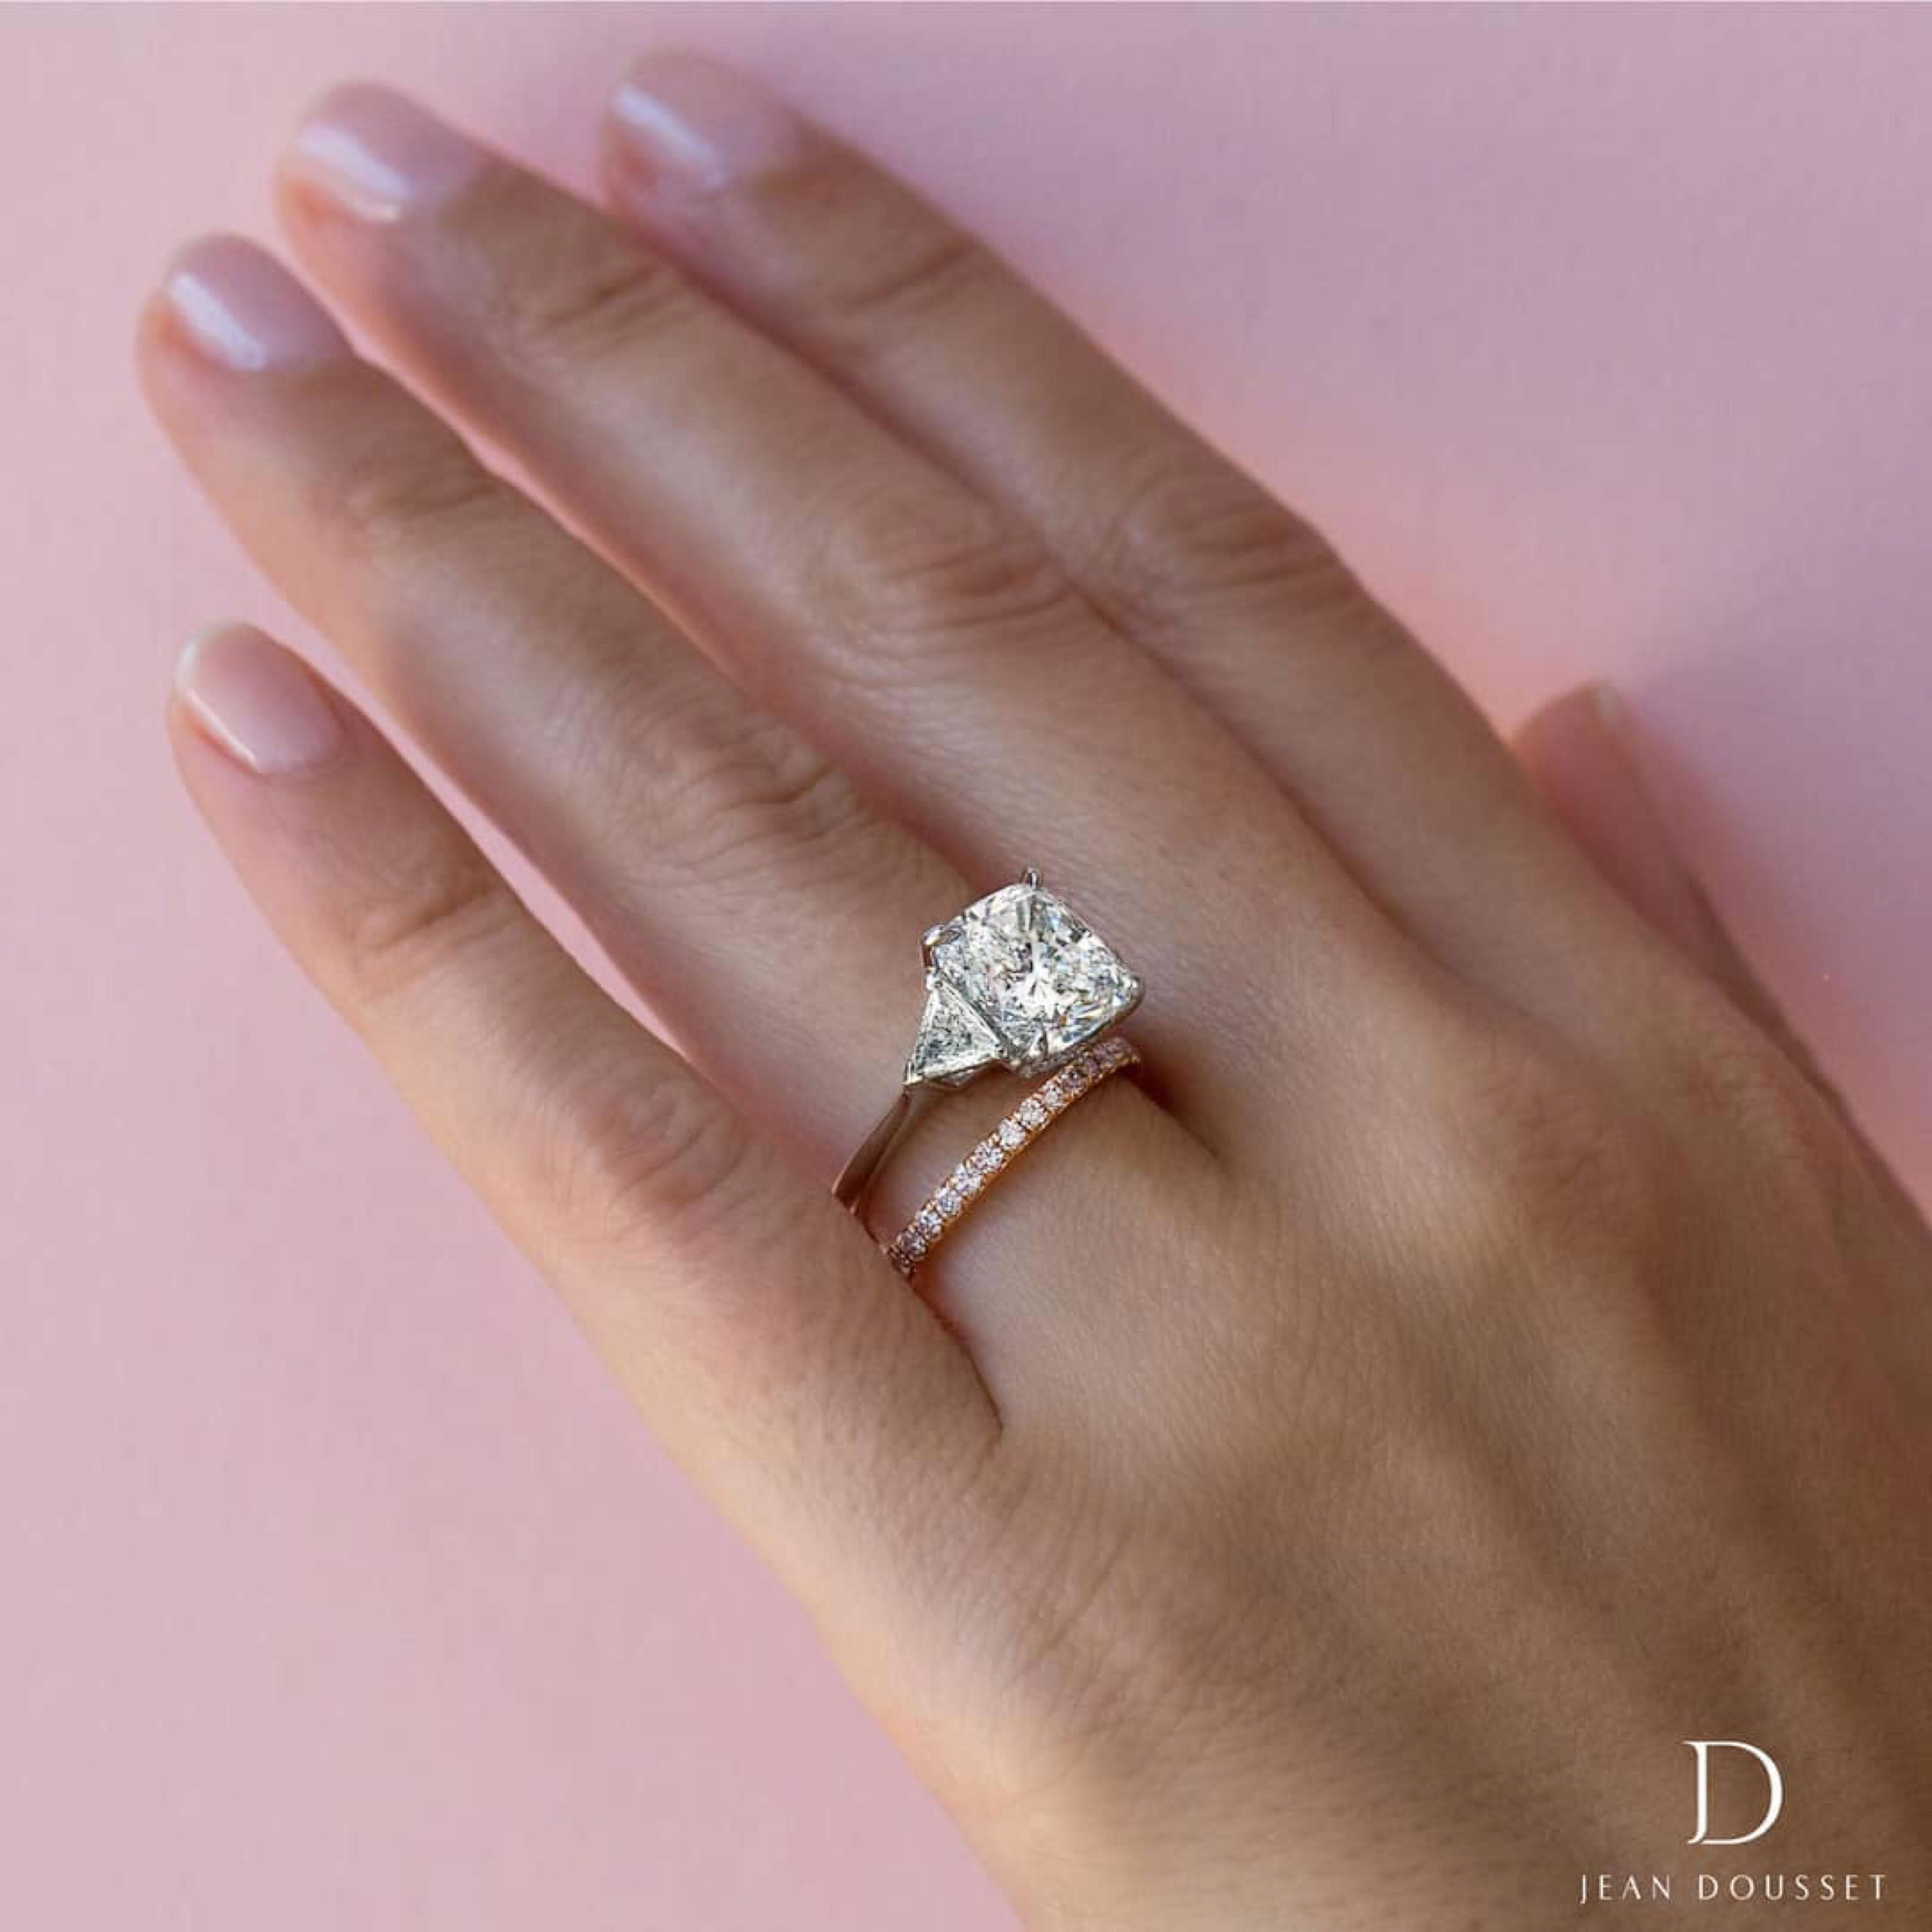 Pin On Jean Dousset Engagement Rings